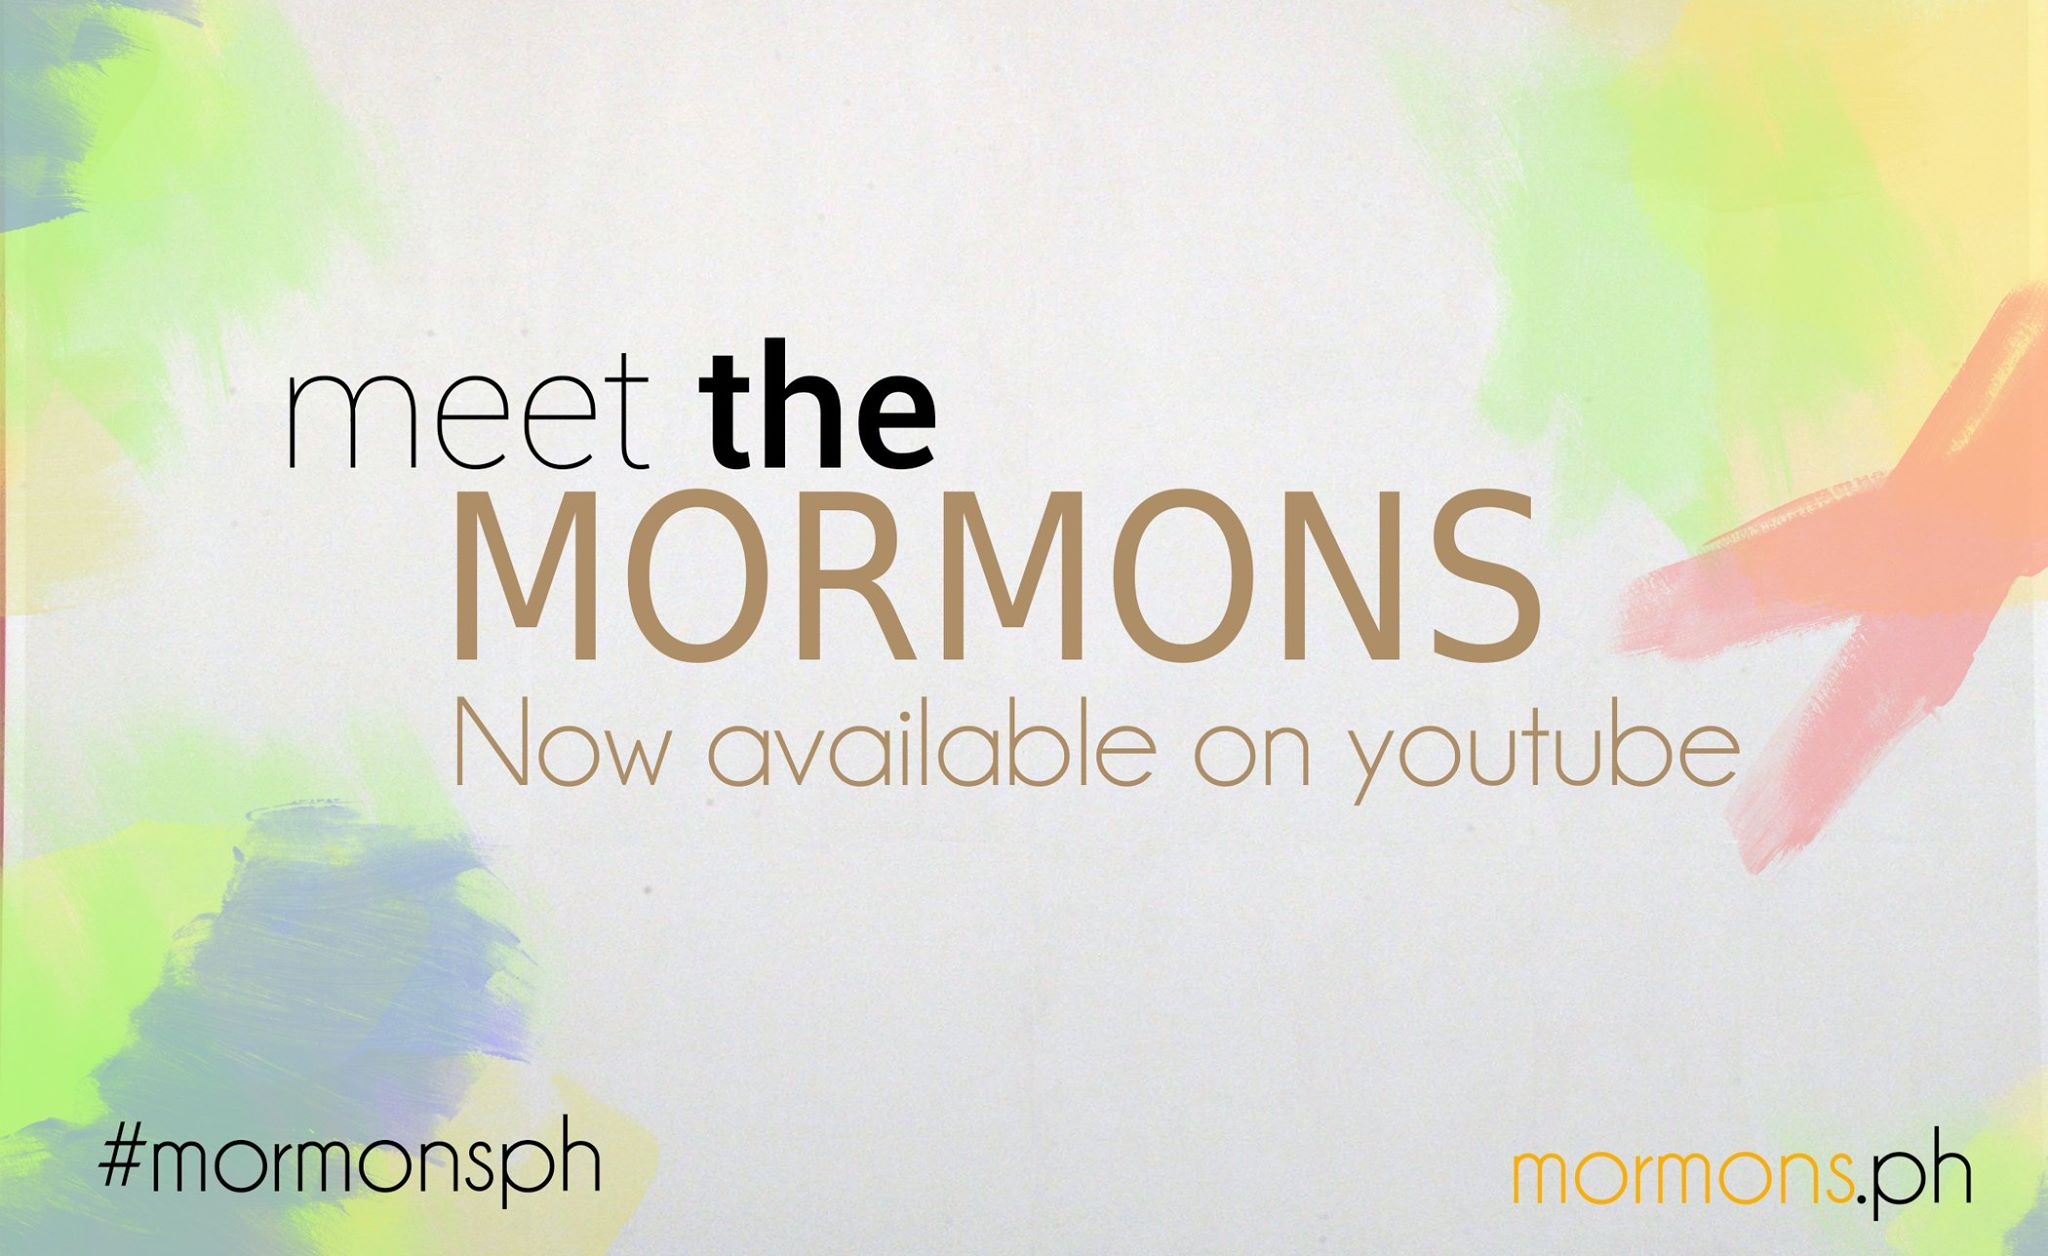 Meet the Mormons – Free to Watch on YouTube